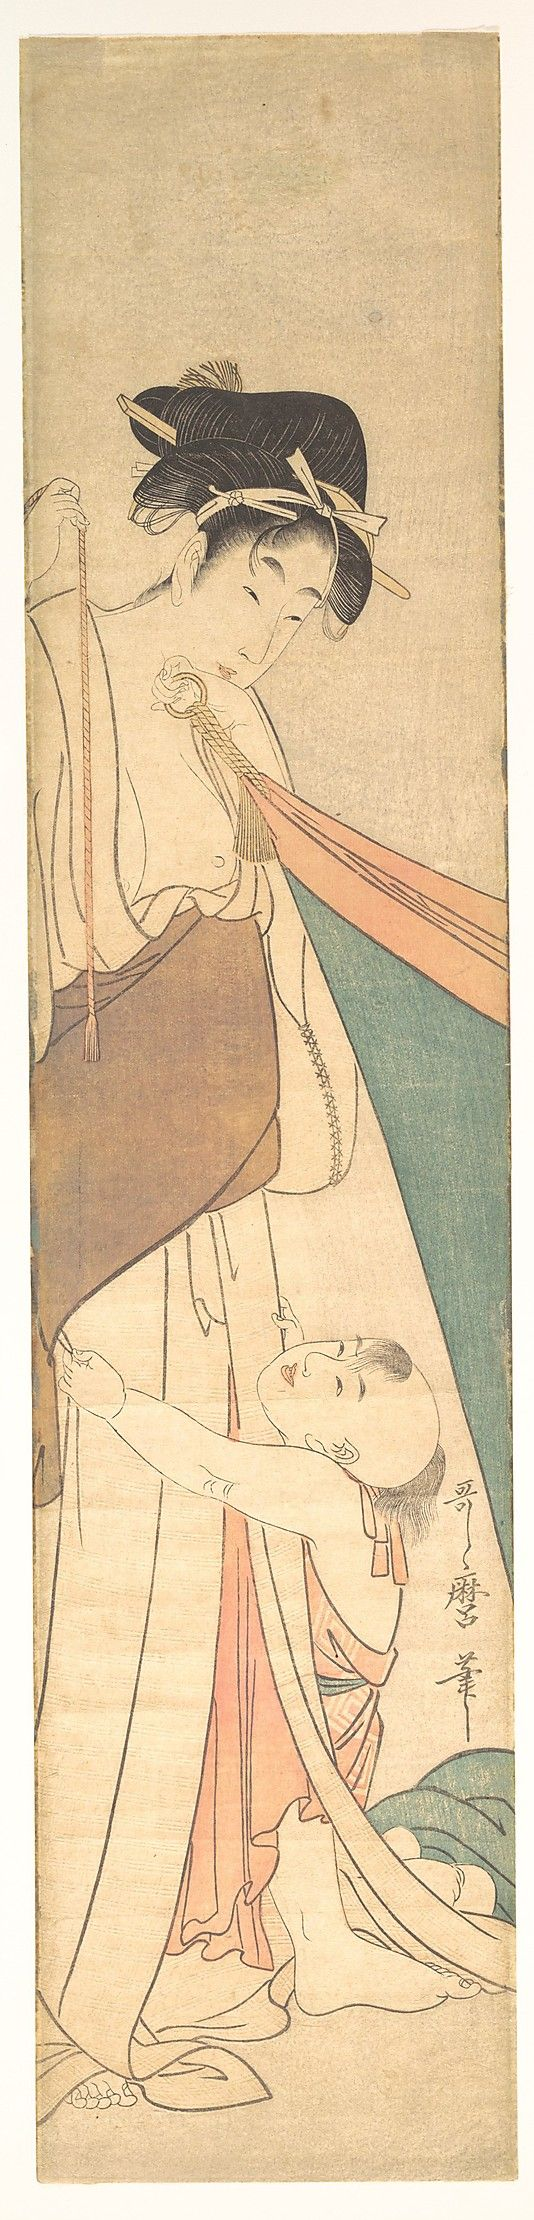 Woman and Child  Kitagawa Utamaro  (Japanese, 1753–1806)  Period: Edo period (1615–1868) Date: ca. 1795 Culture: Japan Medium: Polychrome woodblock print; ink and color on paper